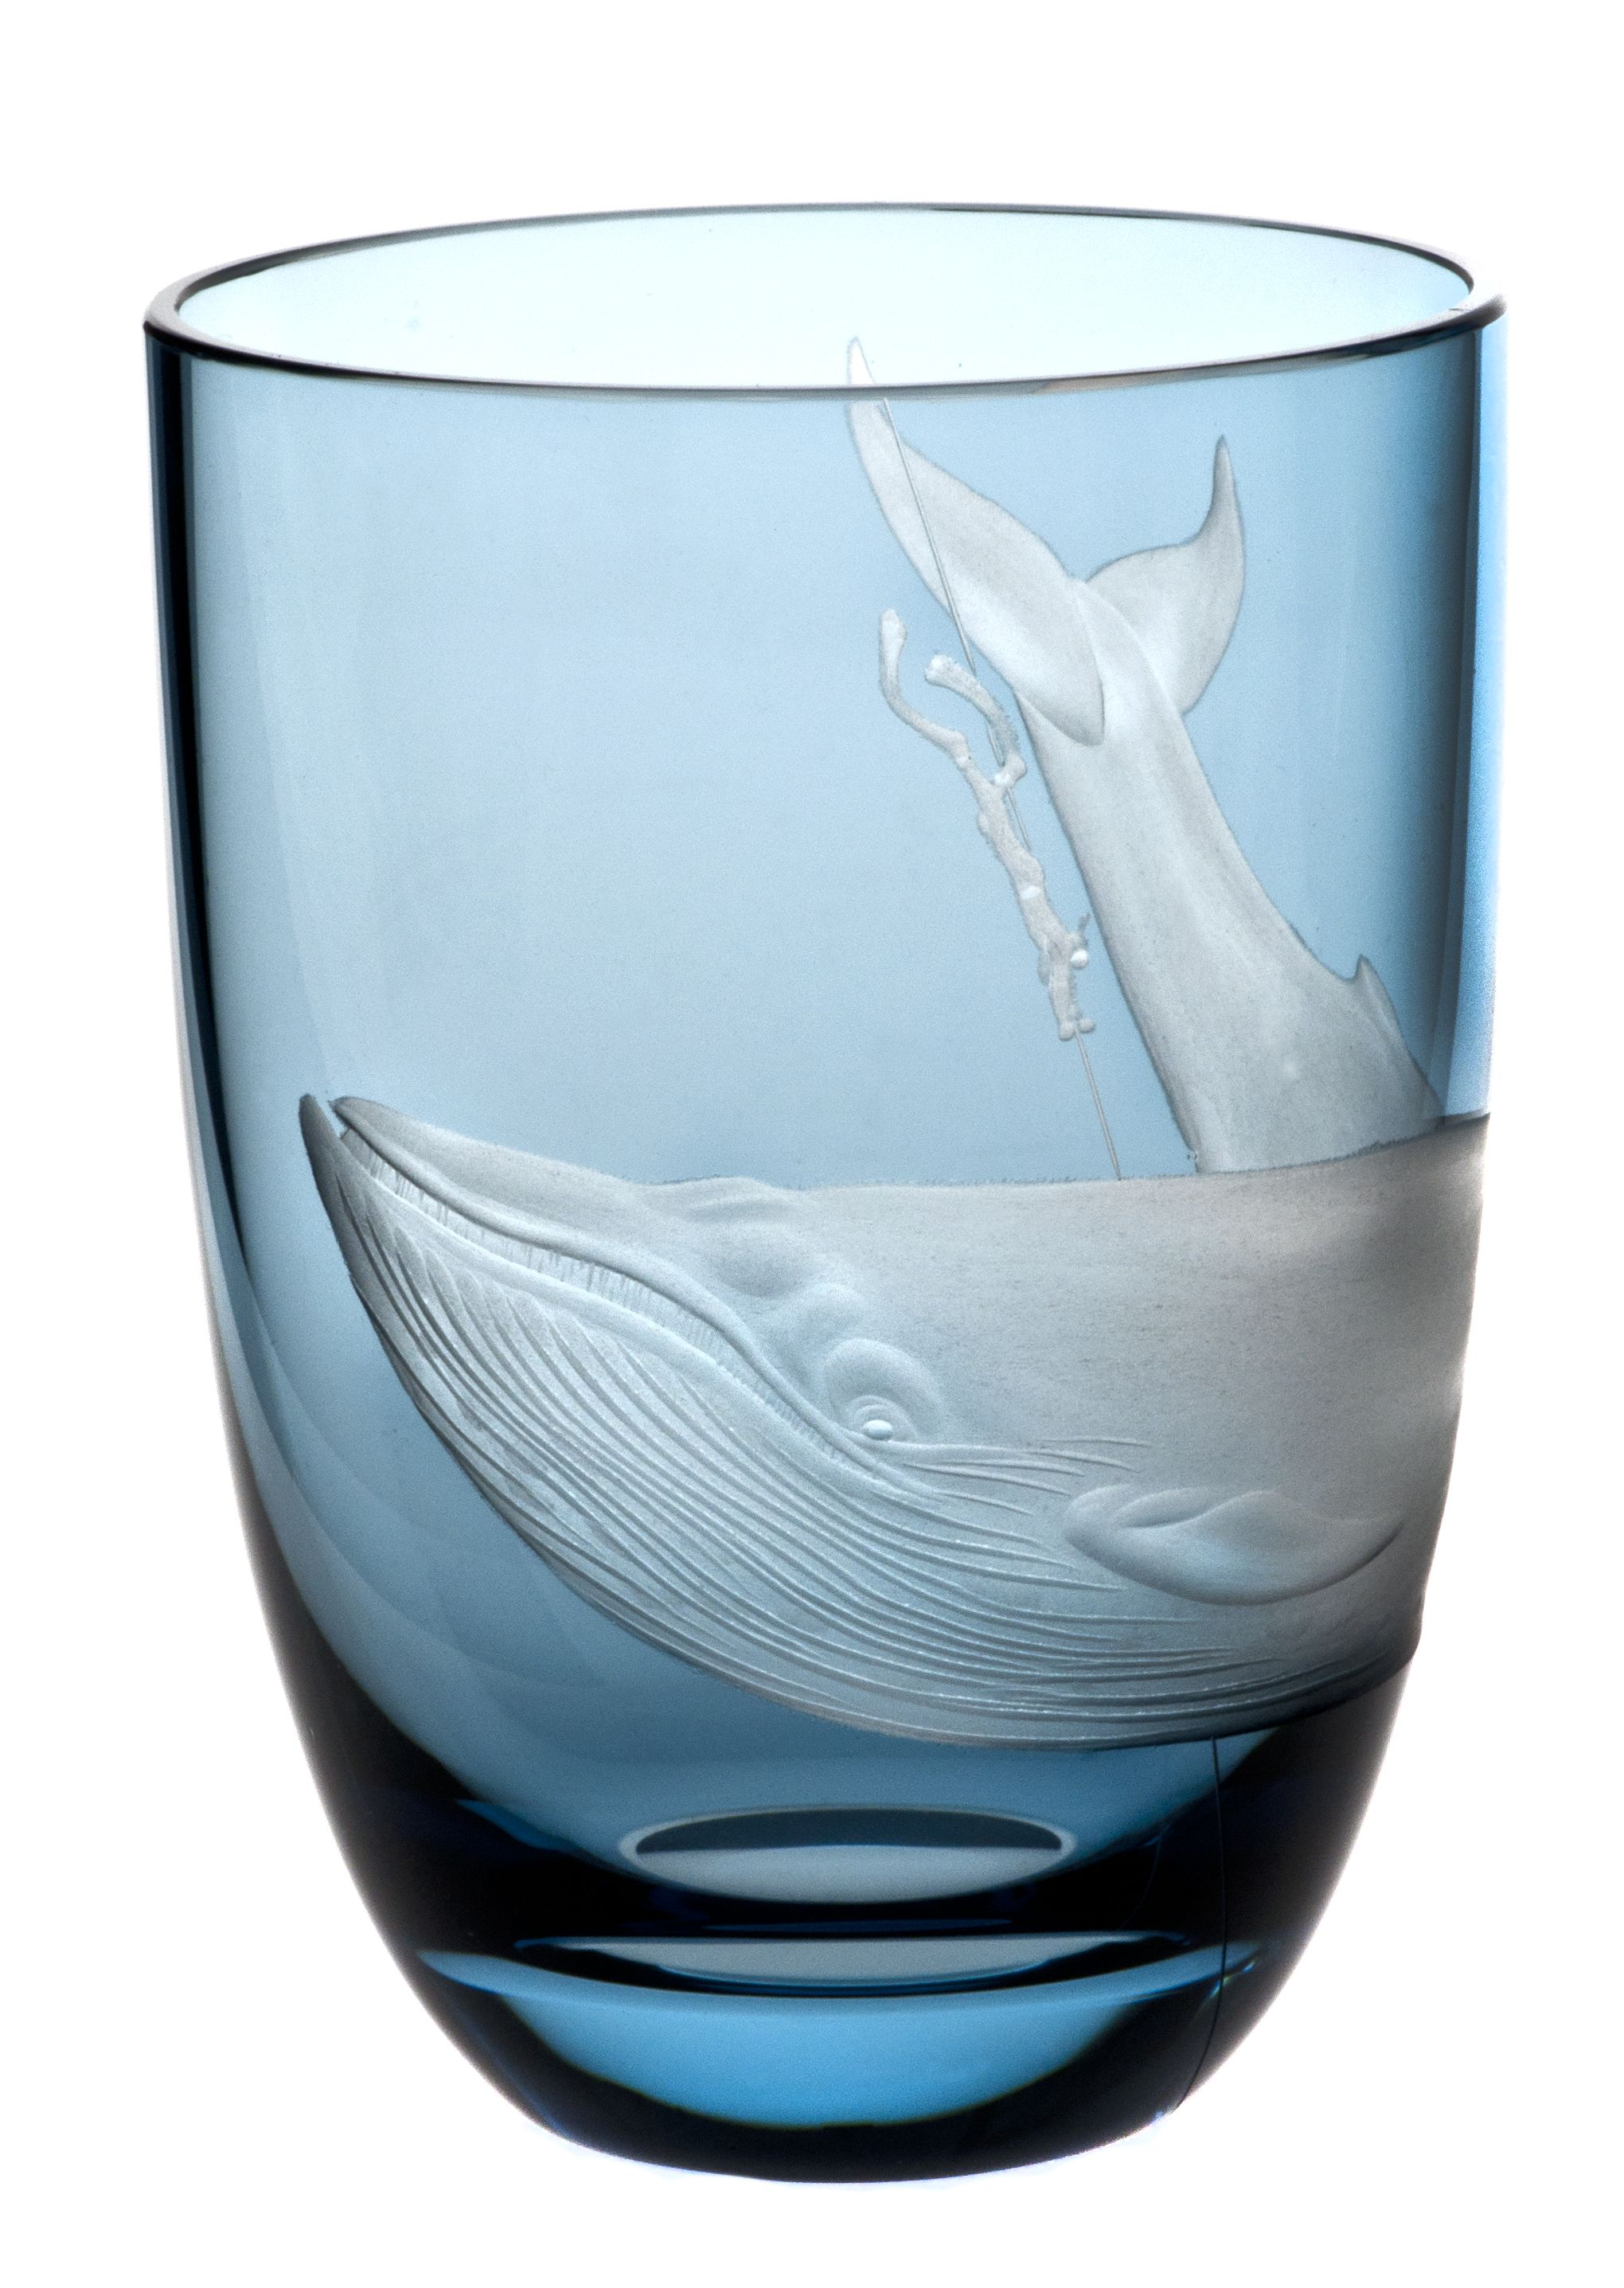 Planet Earth Tumbler 102 mm, Whale